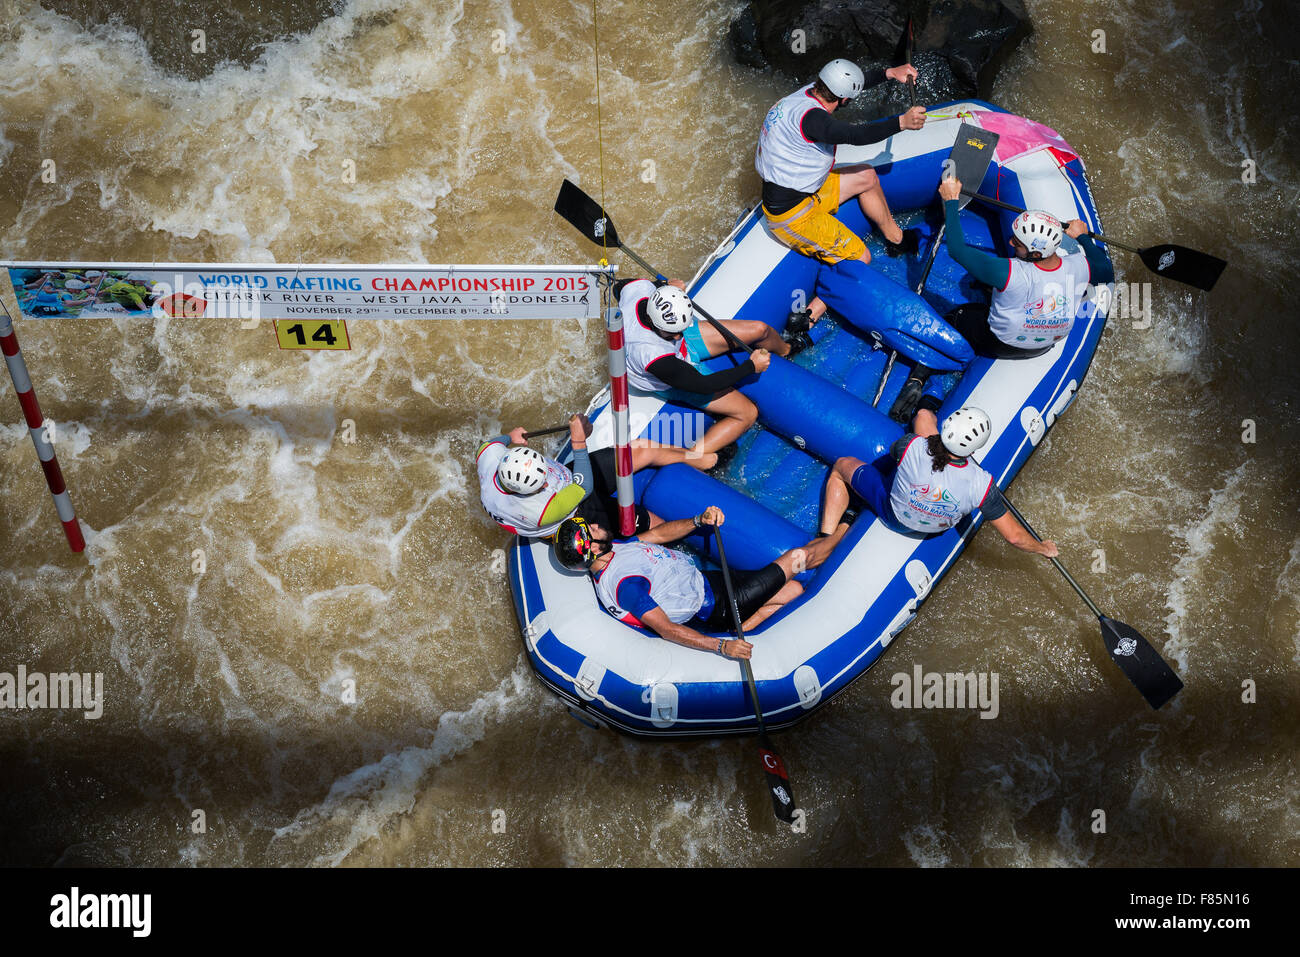 Russian U23 men's team during slalom race category on World Rafting Championship. - Stock Image